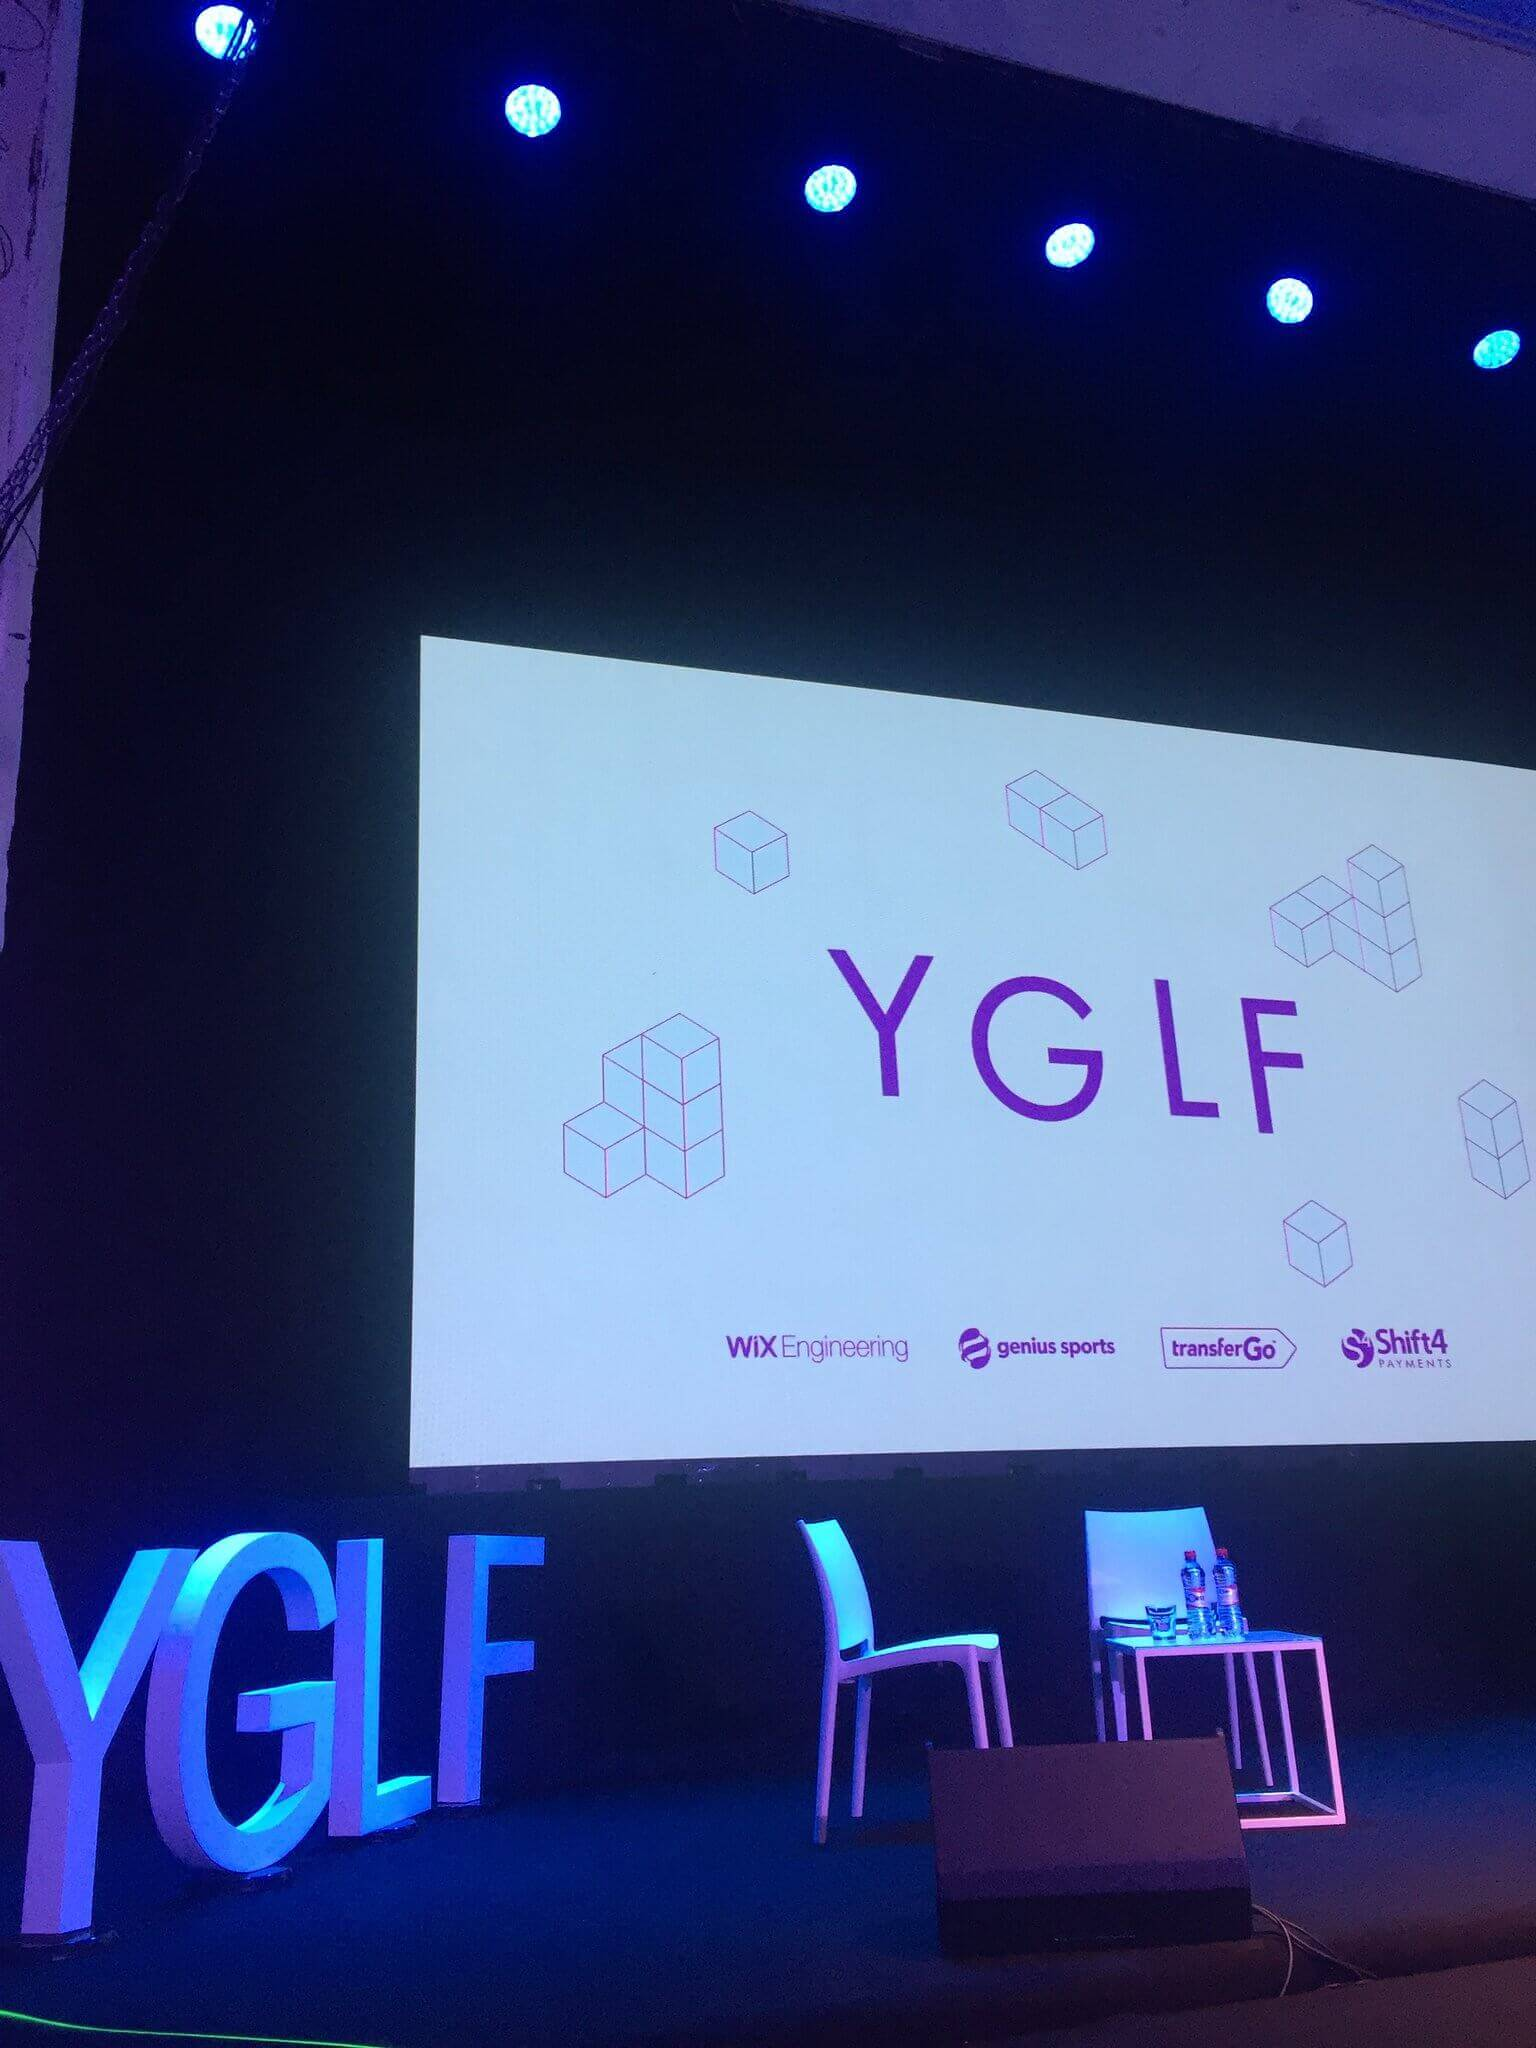 The YGLF placeholder slide used throughout the day.